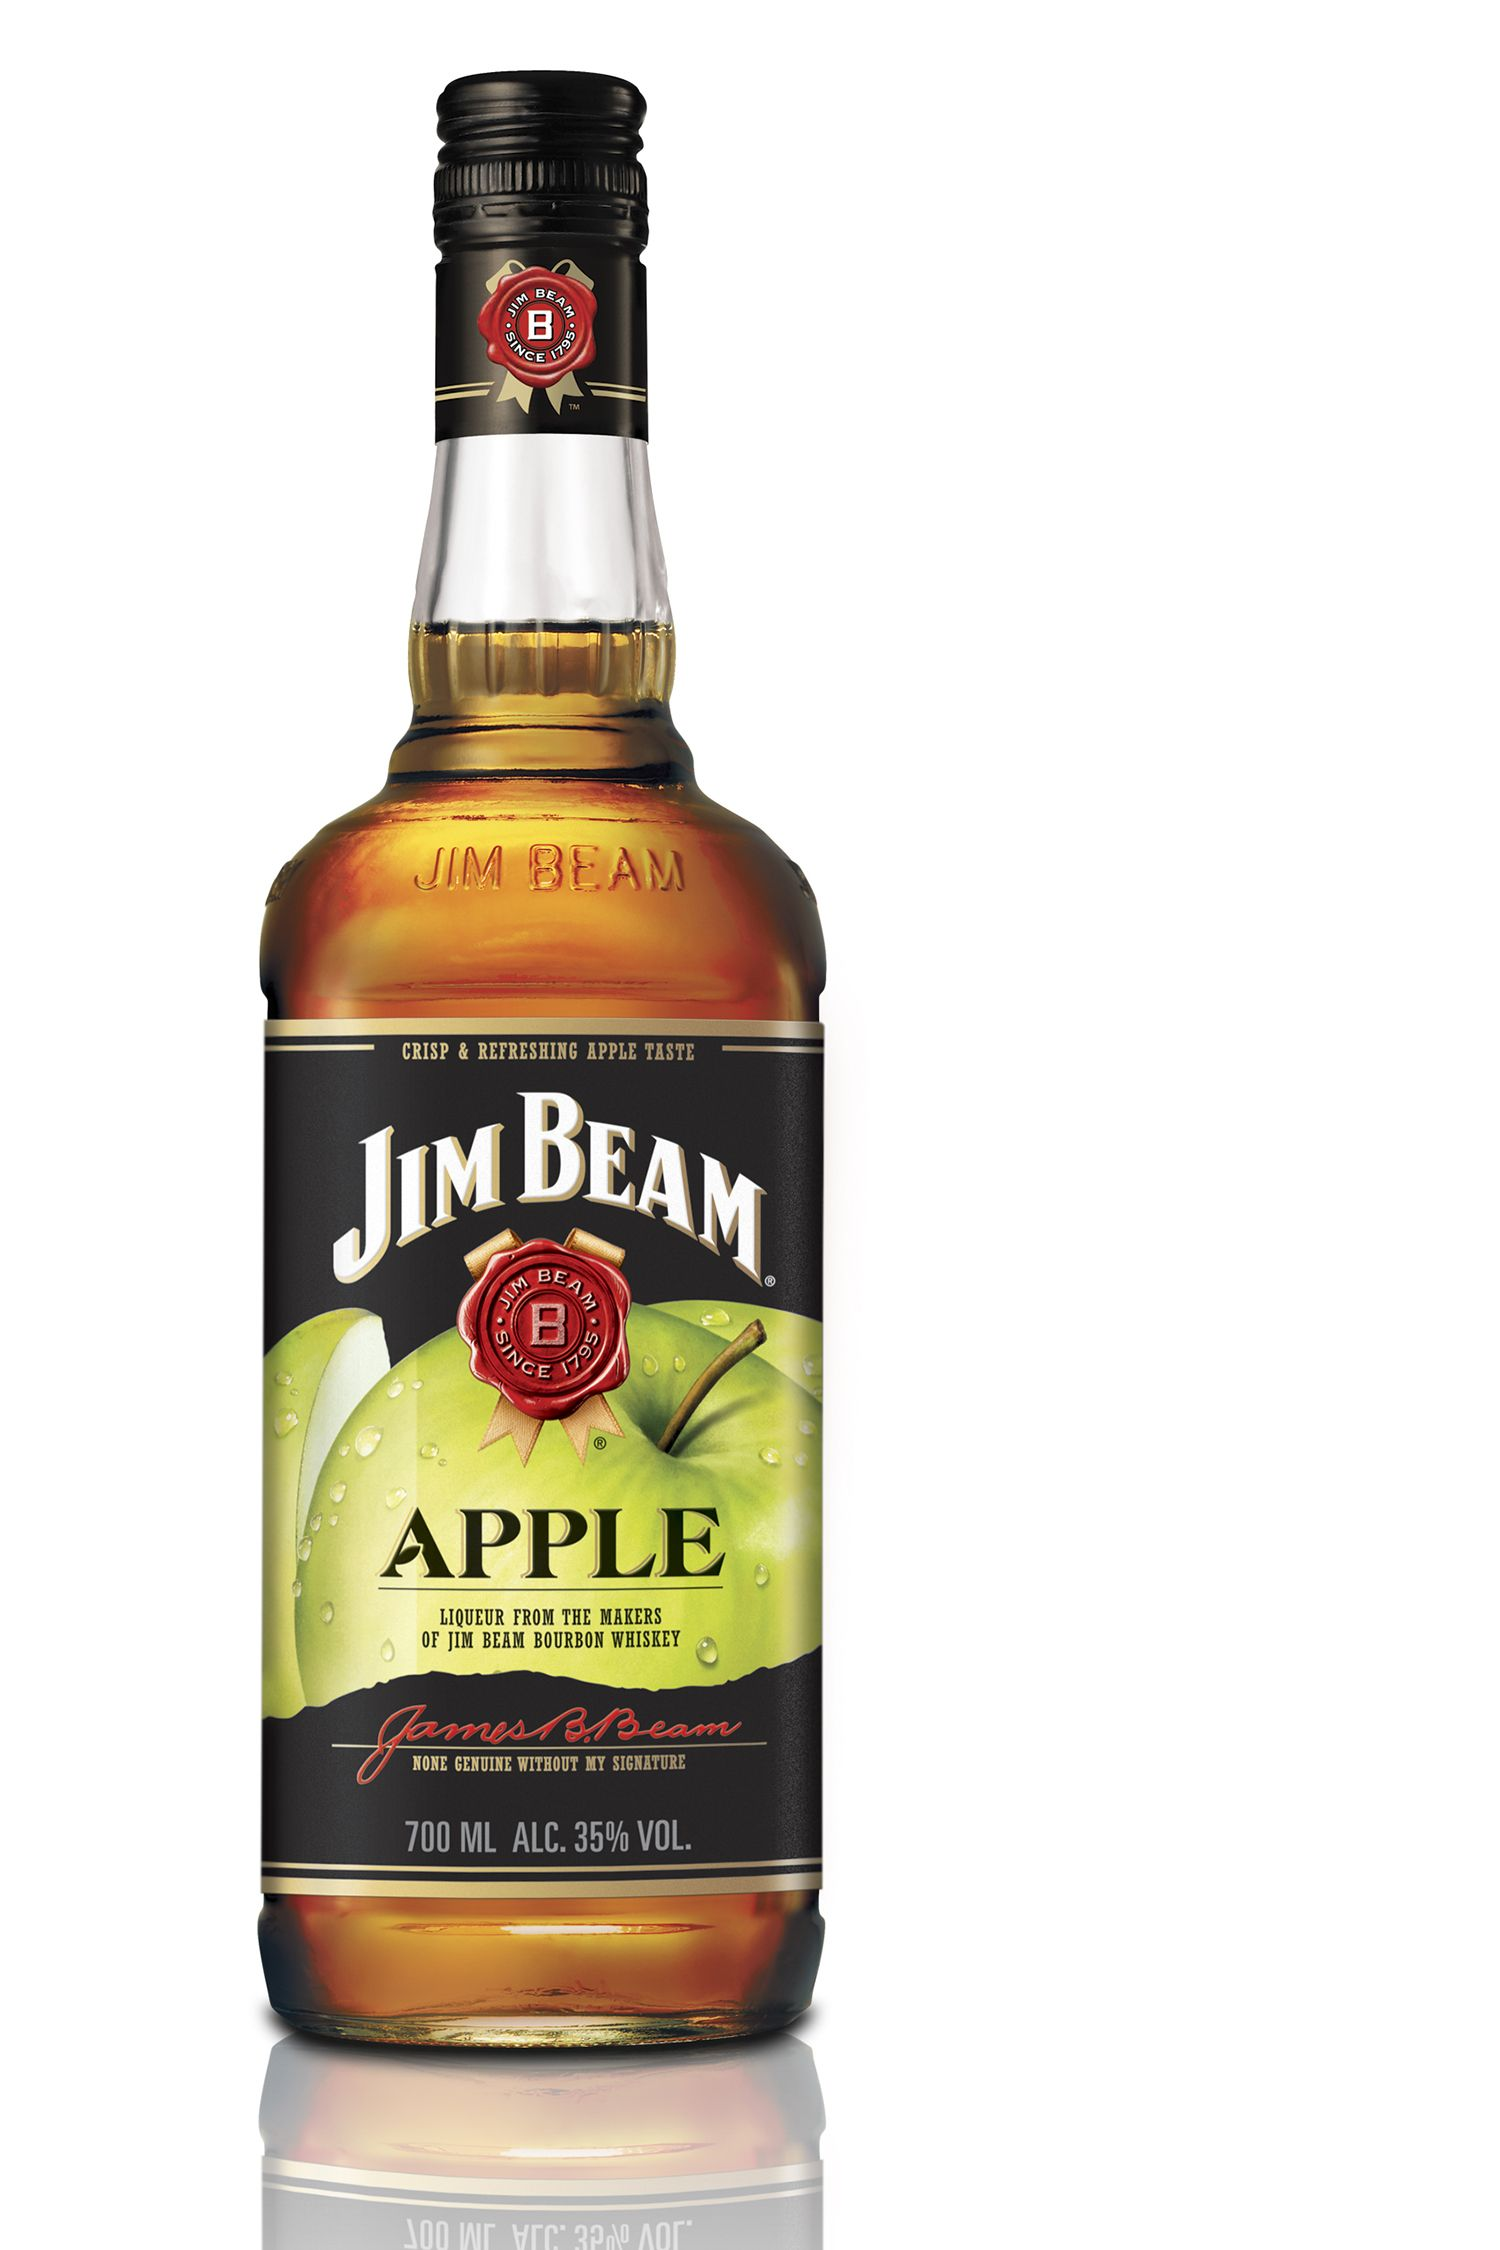 Jim Beam S Apple Bourbon Adds A Sweet Treat To Your